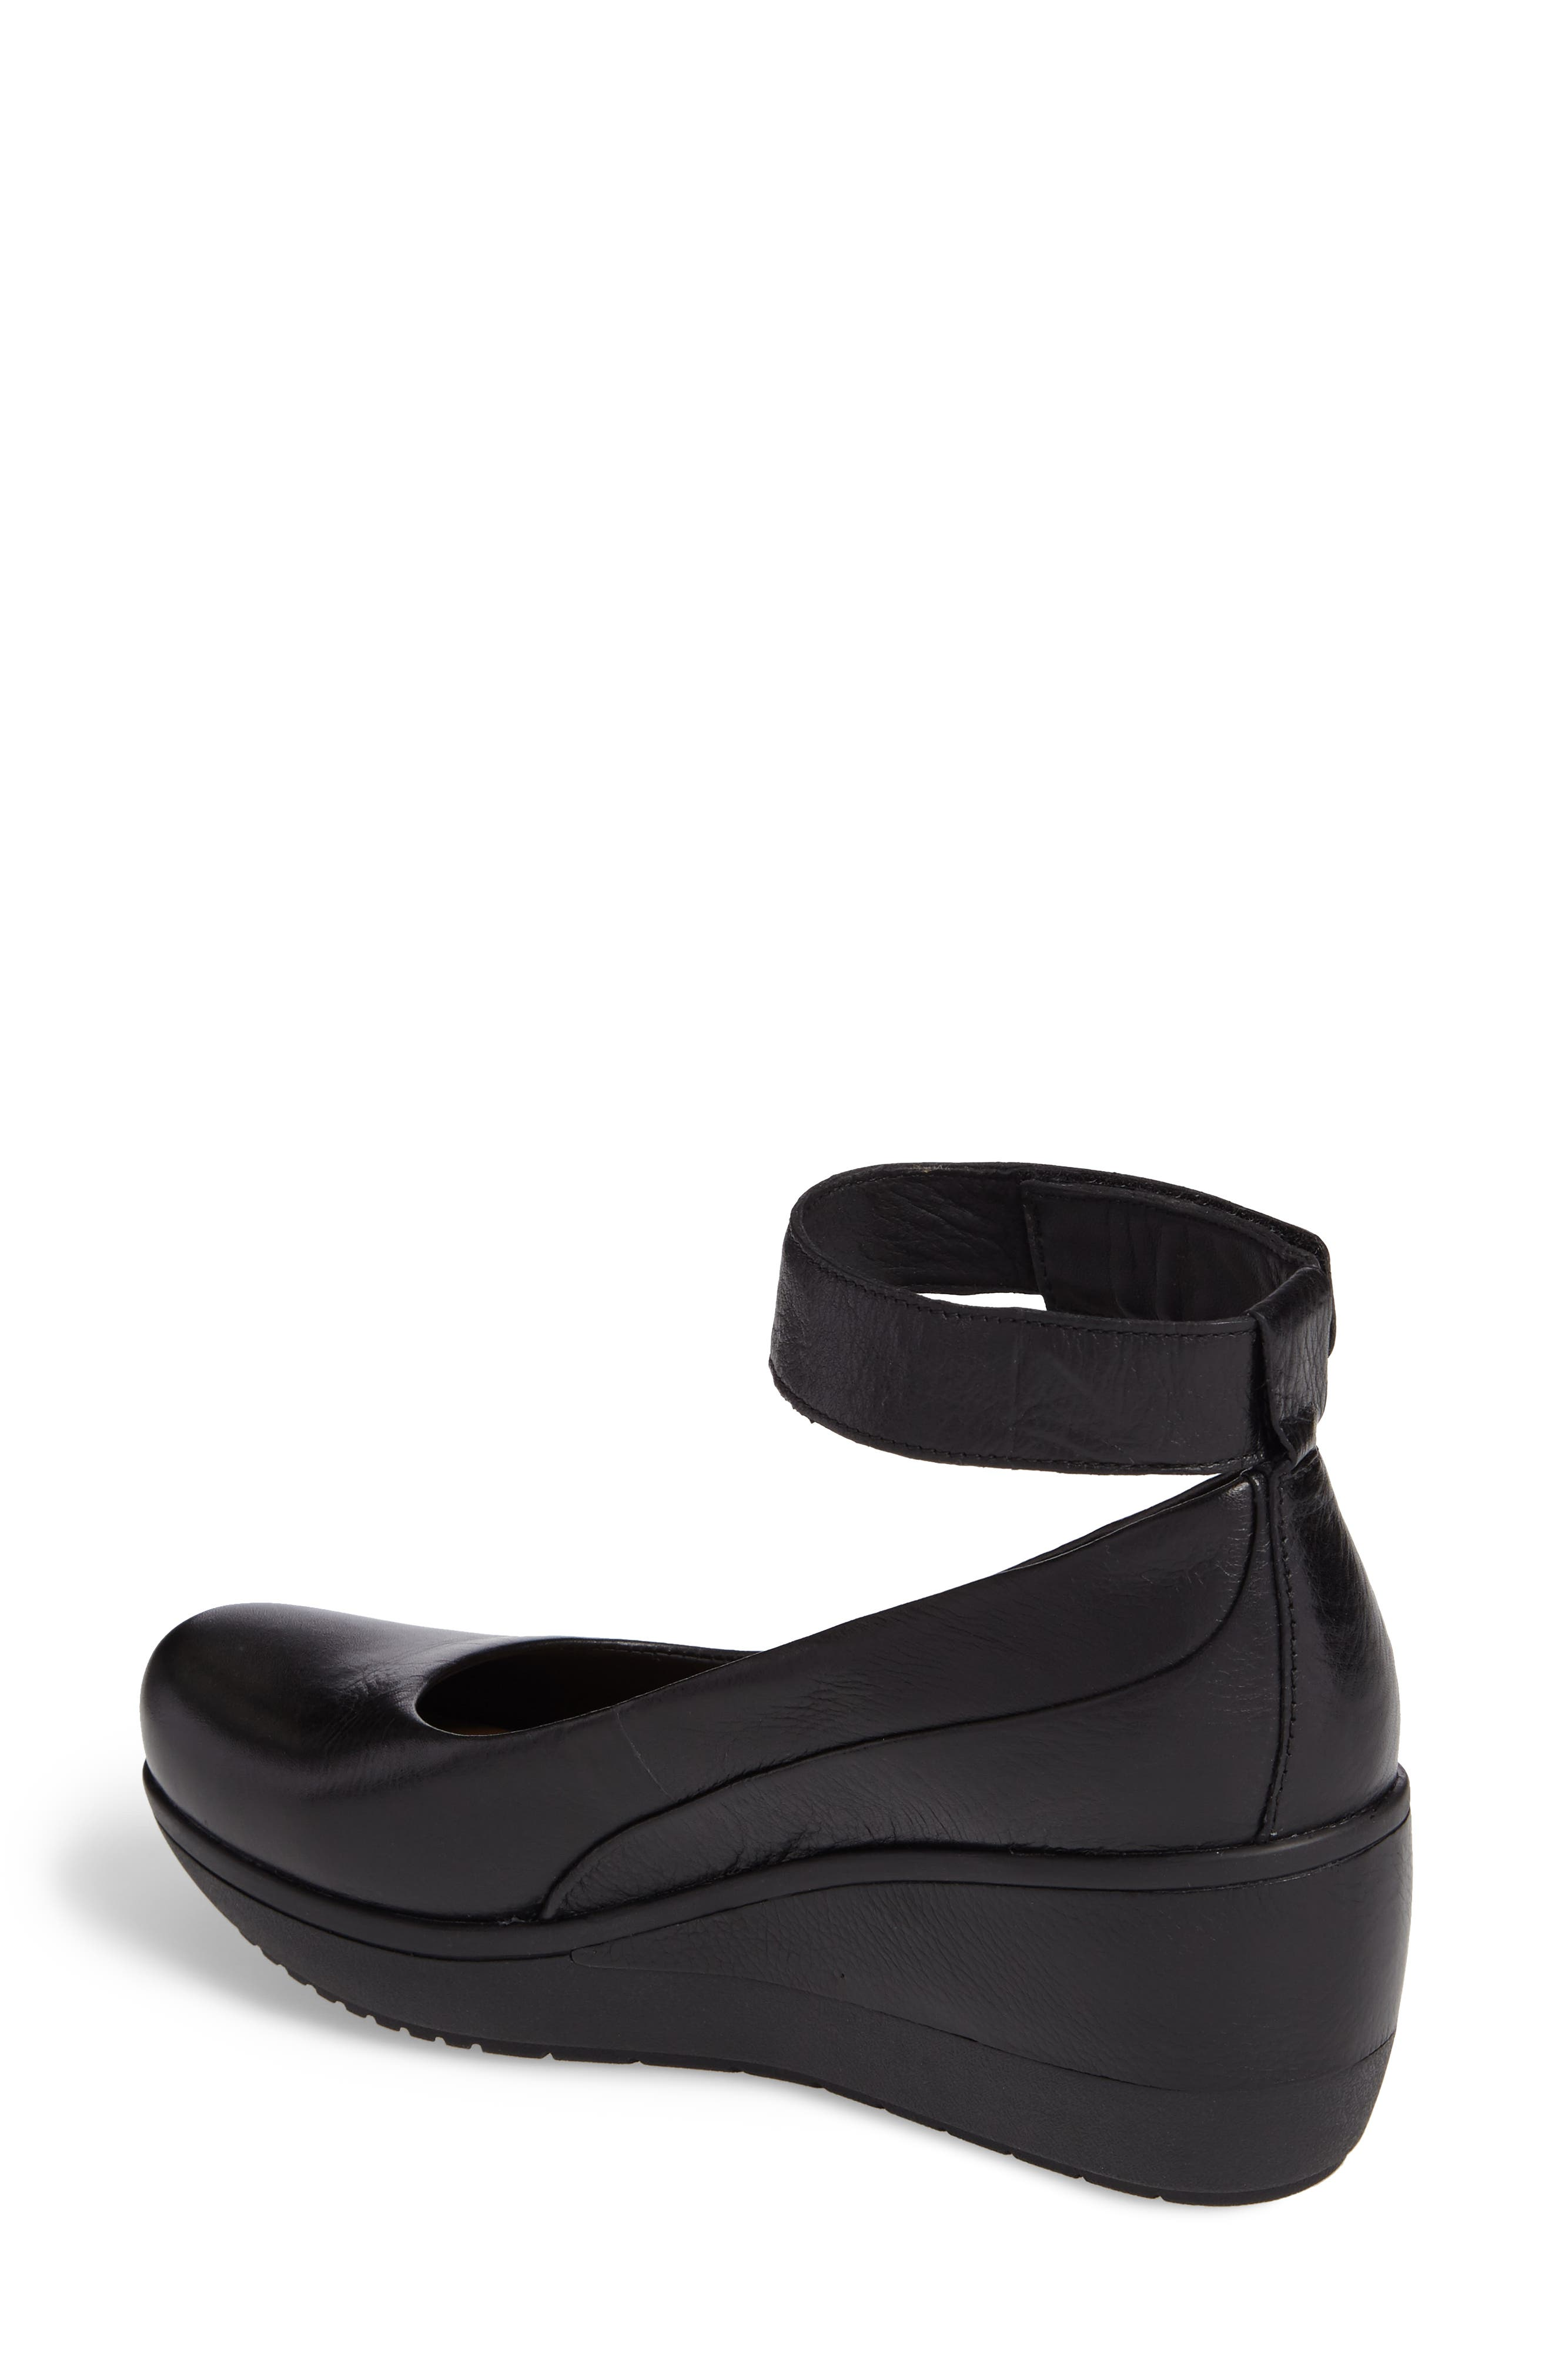 Wynnmere Fox Ankle Strap Pump,                             Alternate thumbnail 2, color,                             BLACK LEATHER